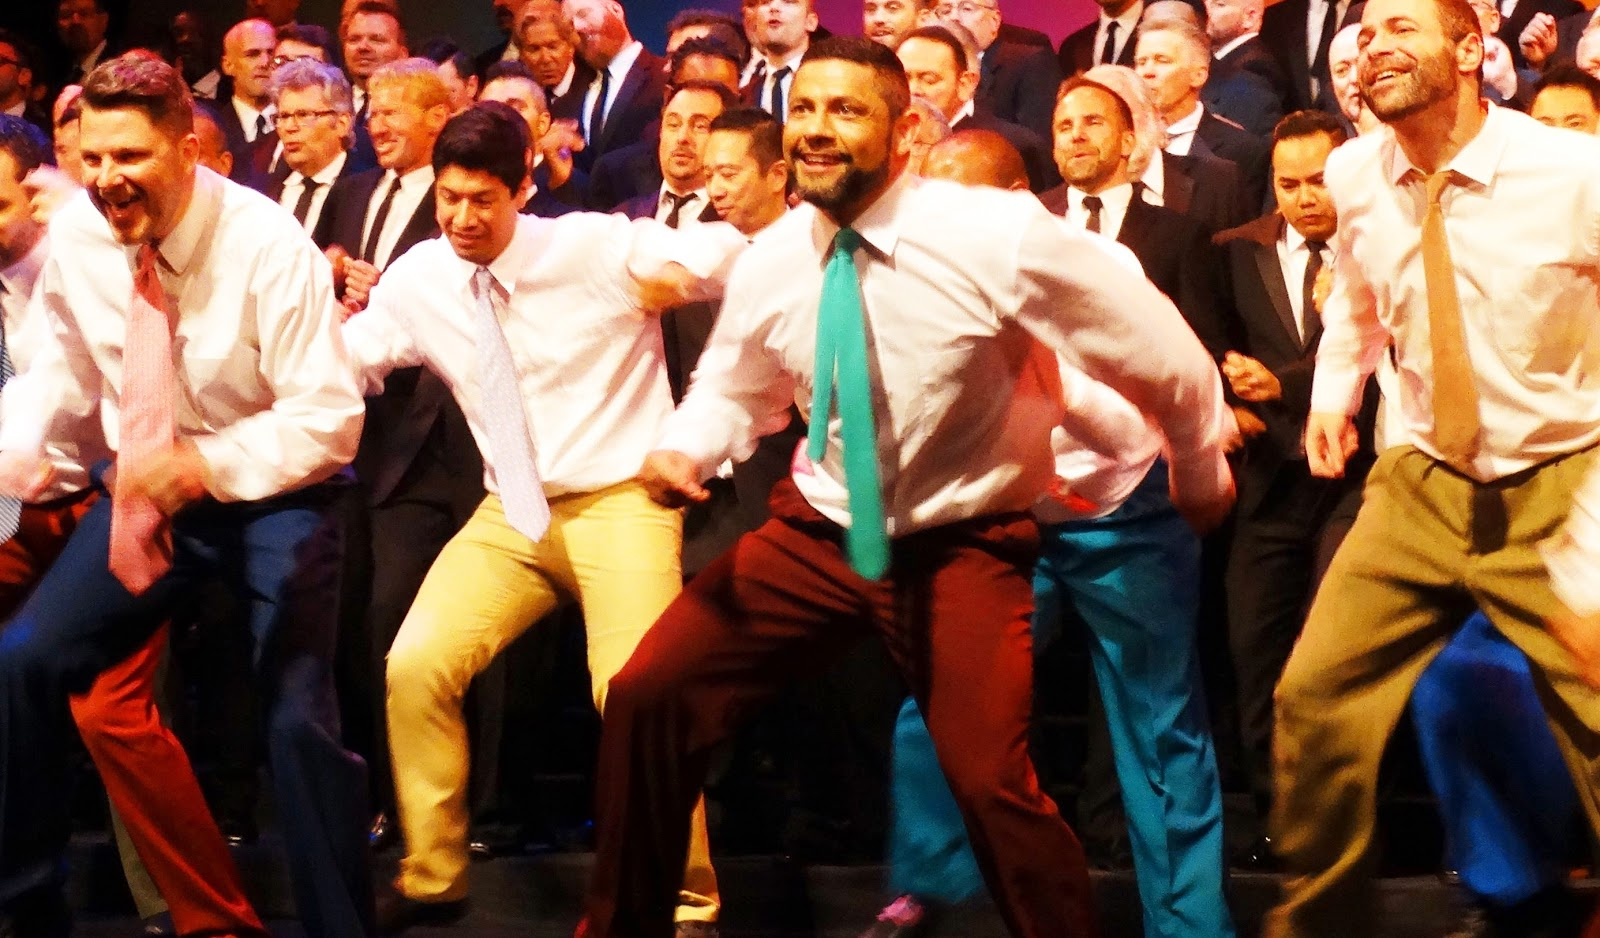 Gay Men's Chorus delights with concerts, projects, community spirit